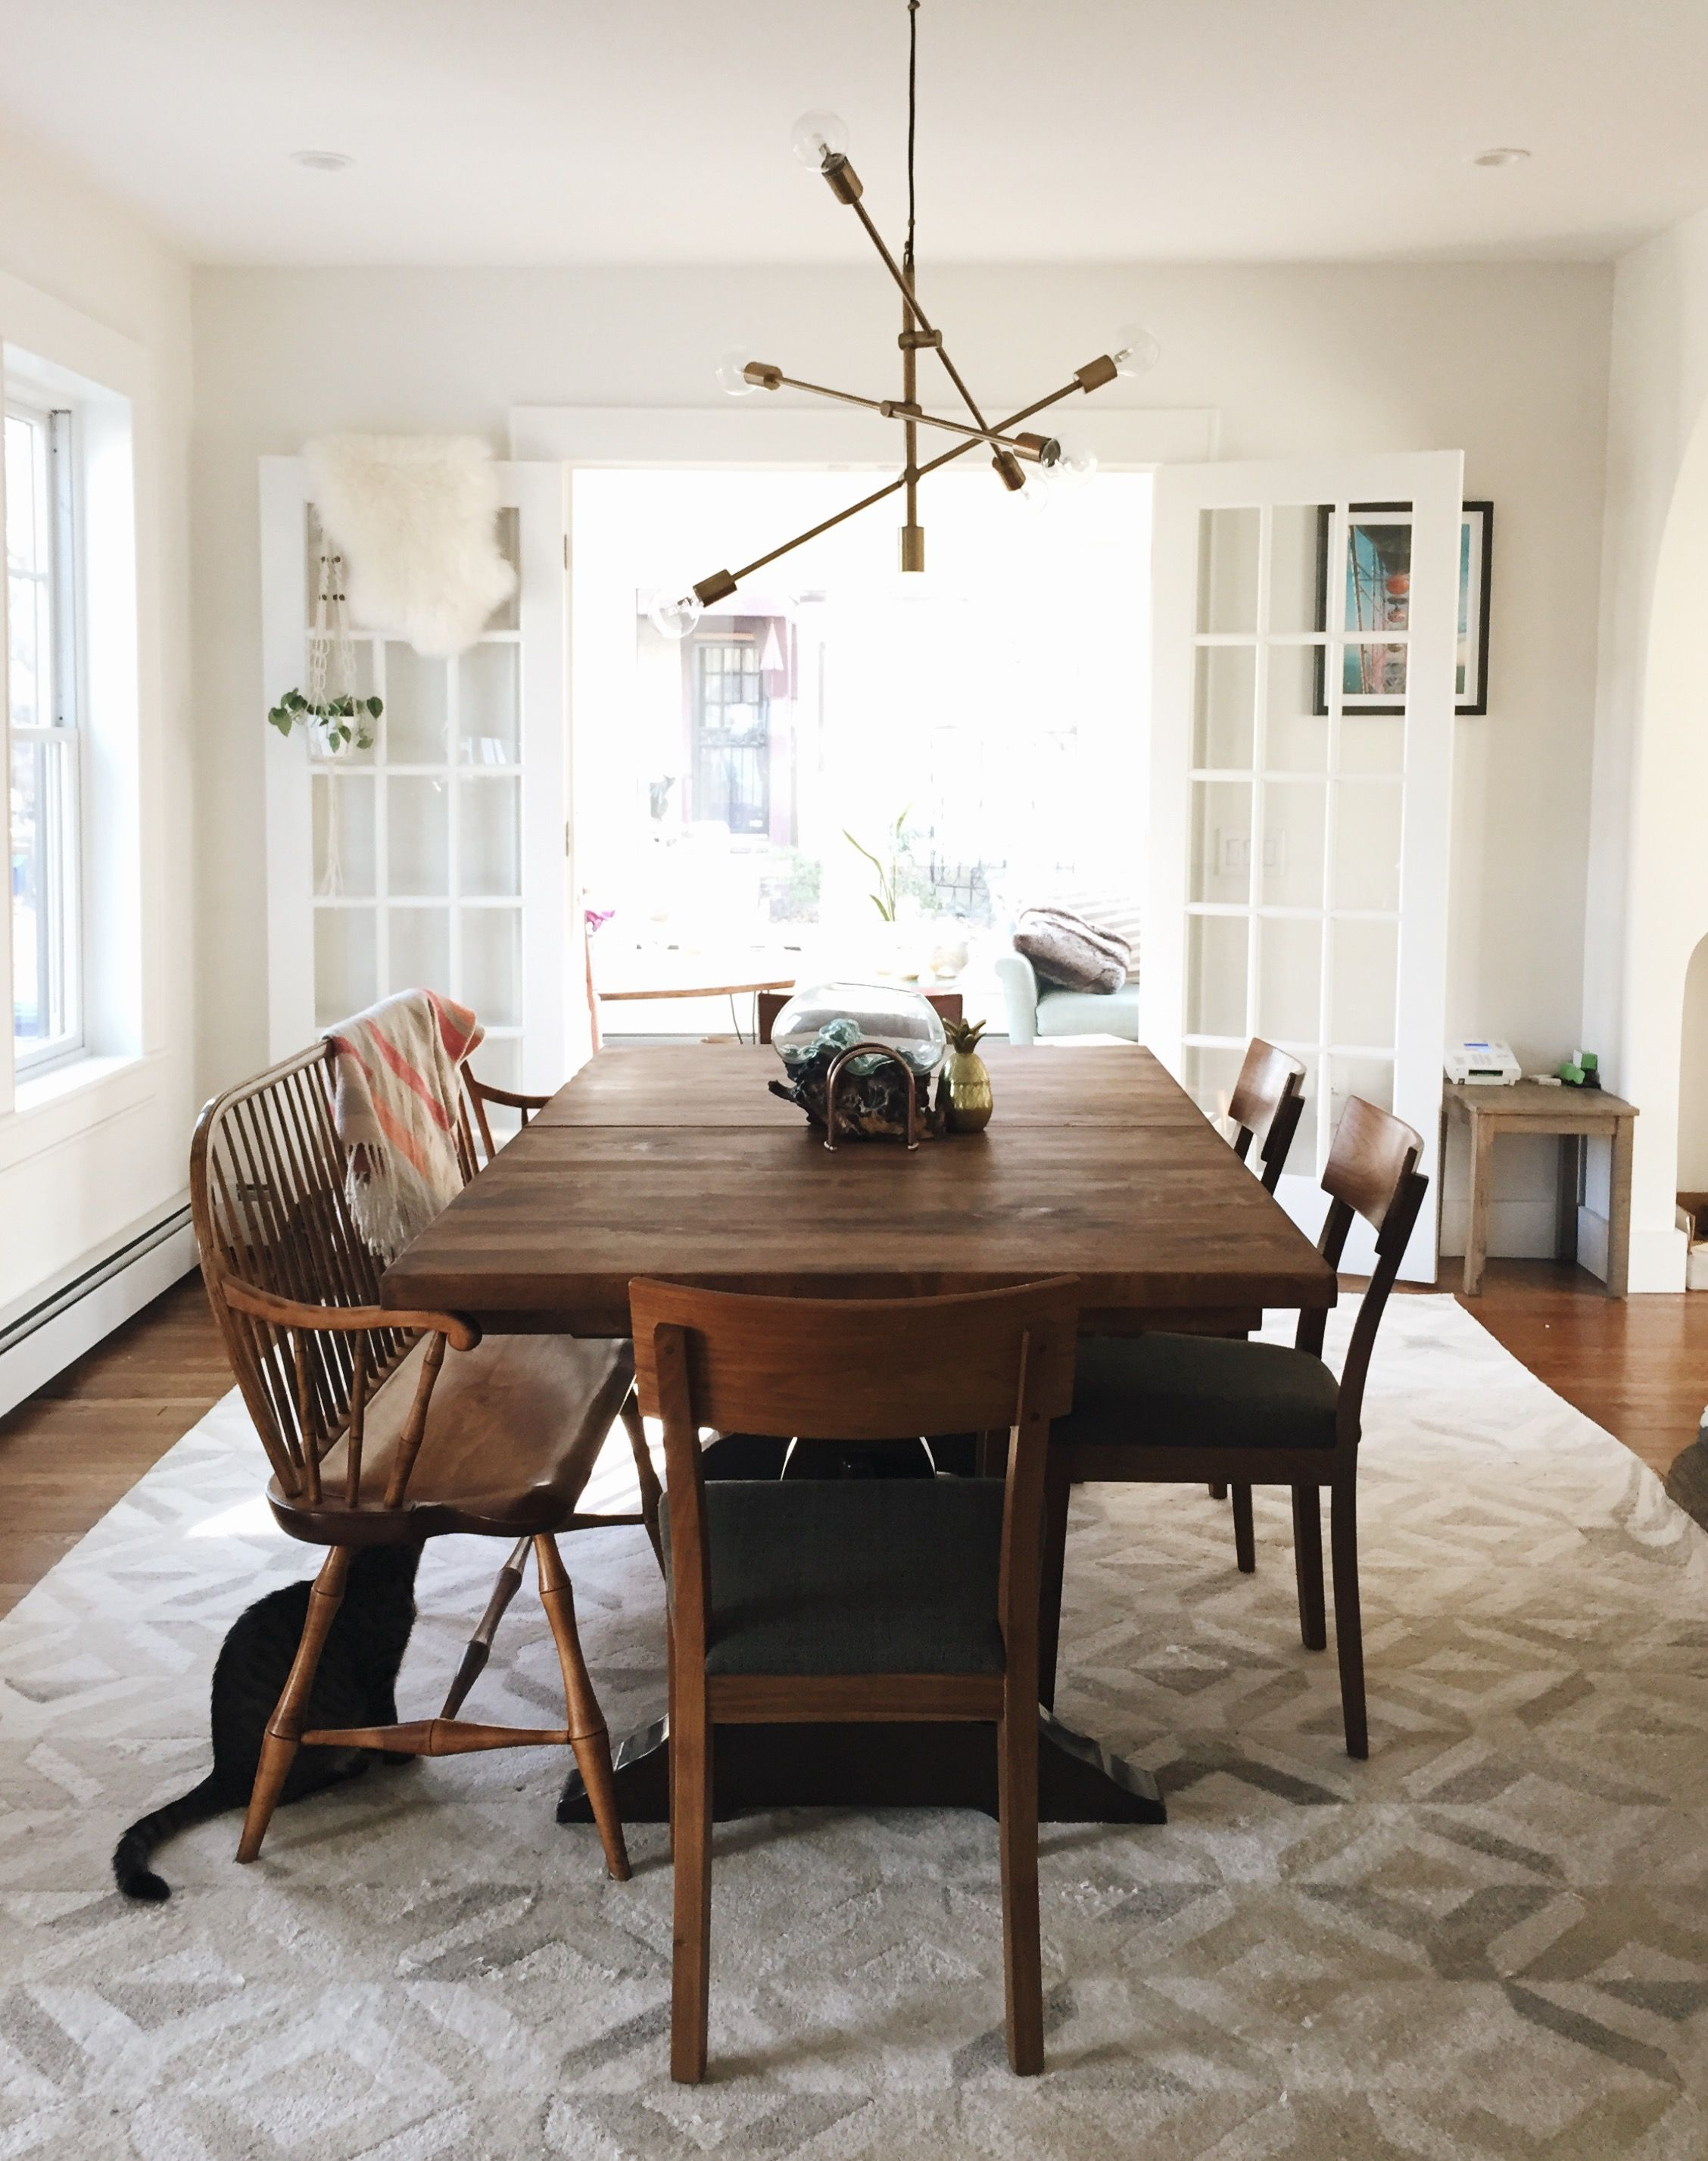 Our Dining Room West Elm Marquis Rug West Elm Mobile Pendant